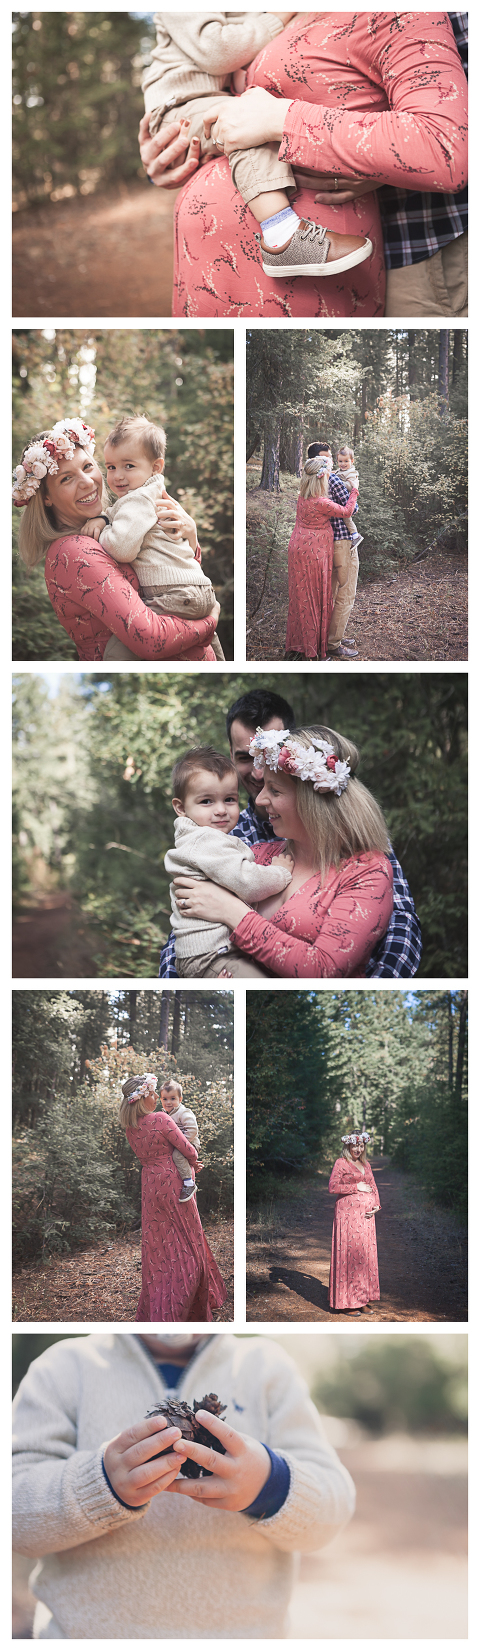 Vitou lifestyle maternity session by Hailey Haberman in Cle Elum WA